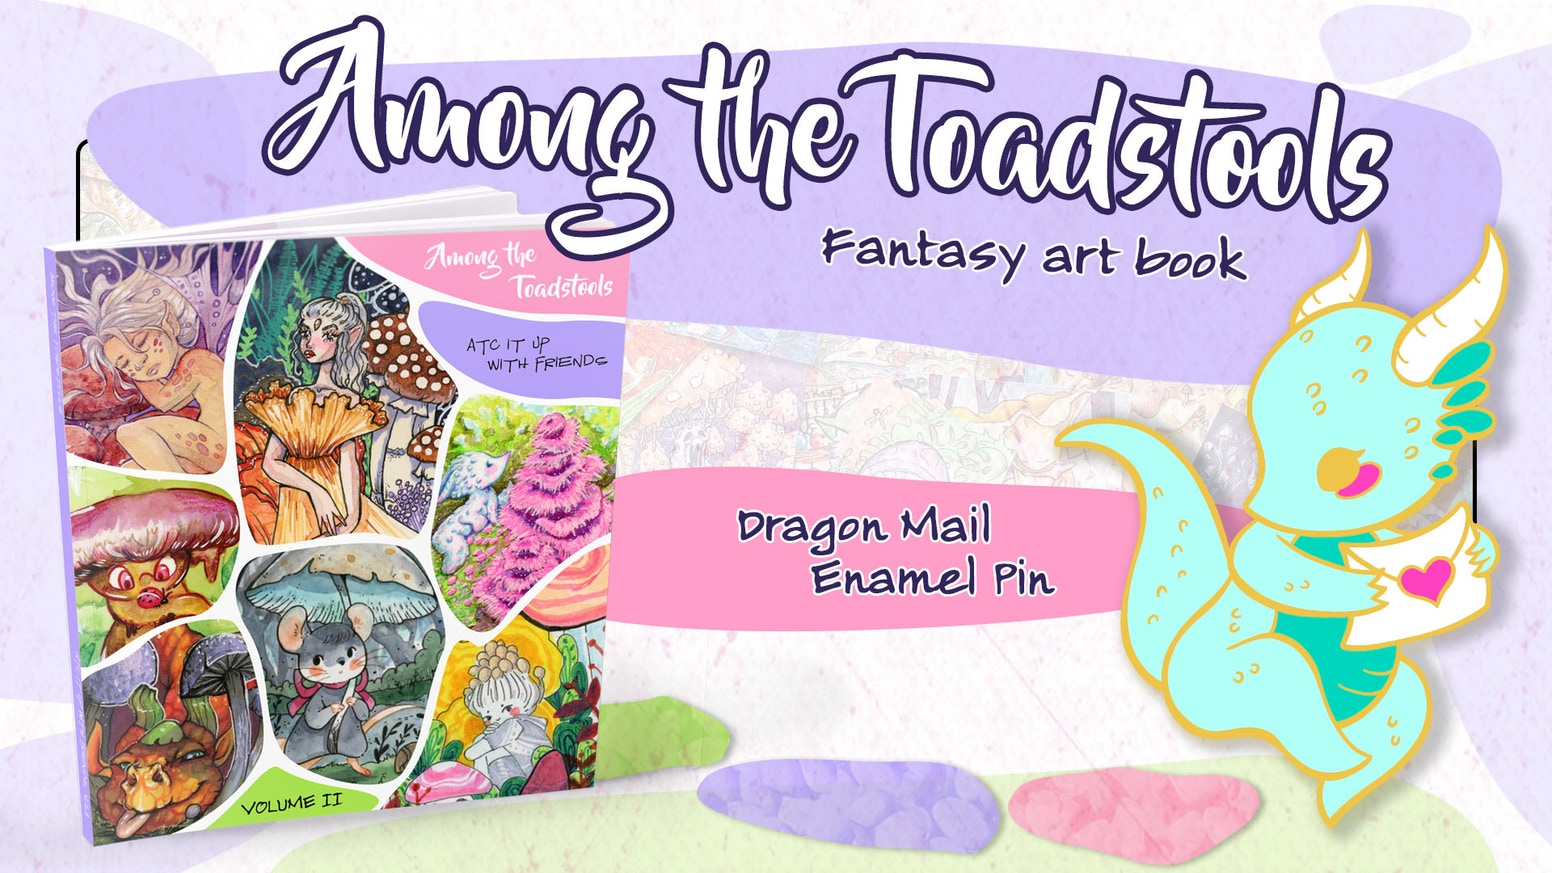 Featuring fantasy artwork from more than 130 artists with an emphasis on mushrooms & a Dragon Mail enamel pin.